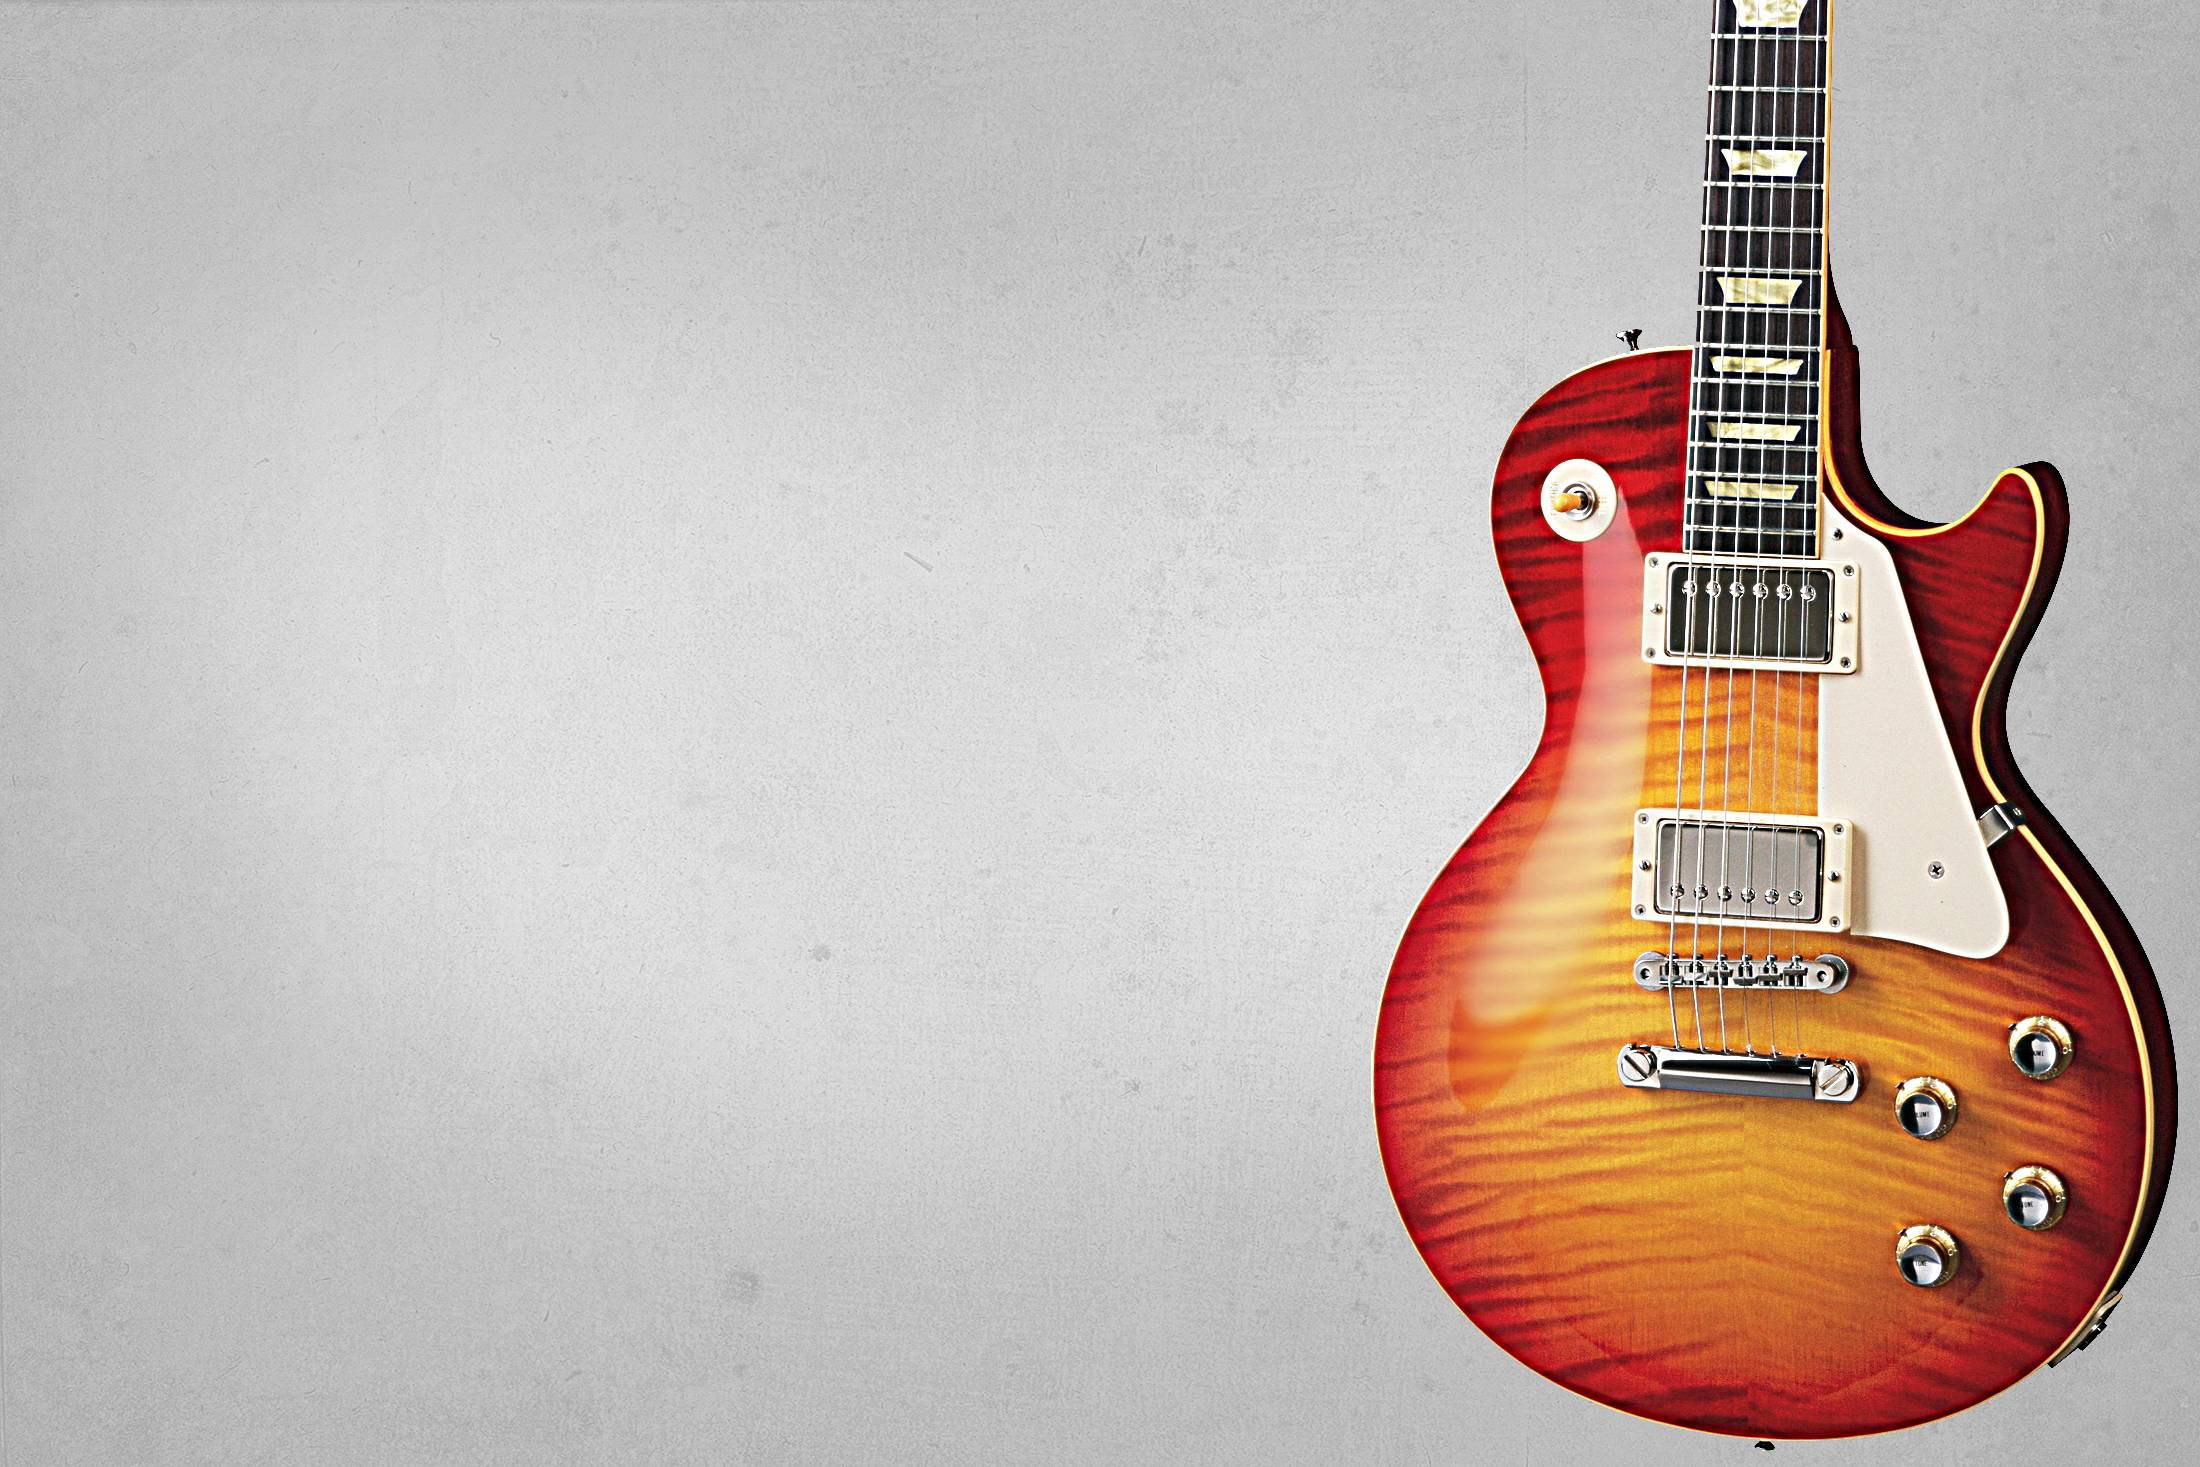 guitar wallpaper les paul - photo #24